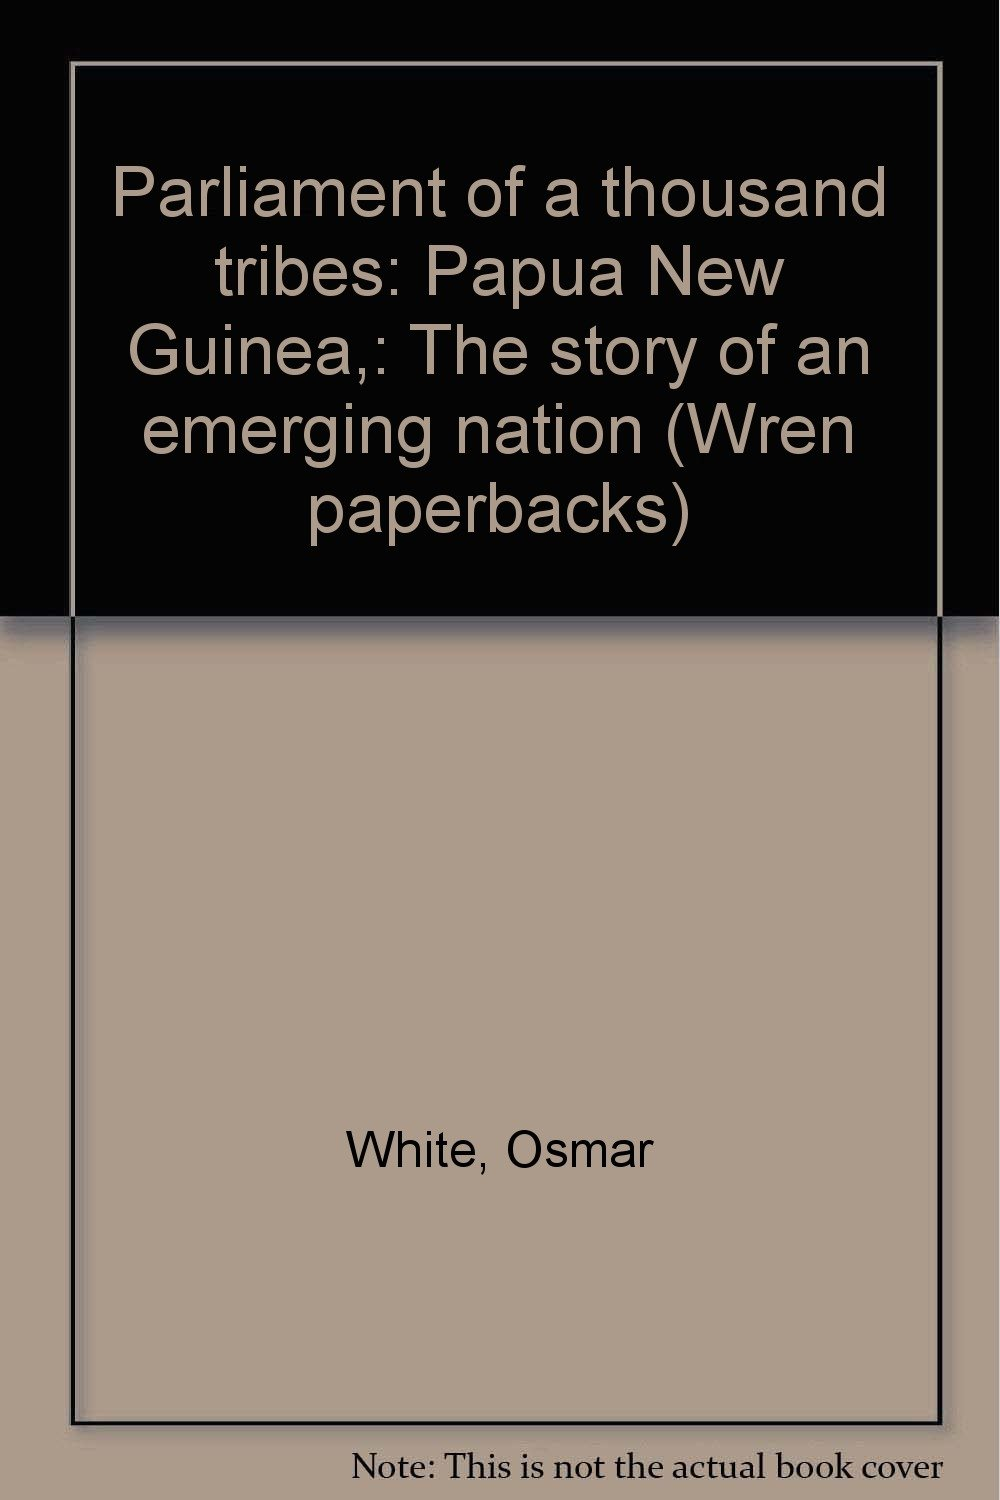 Parliament of a thousand tribes: Papua New Guinea,: The story of an emerging nation (Wren paperbacks)